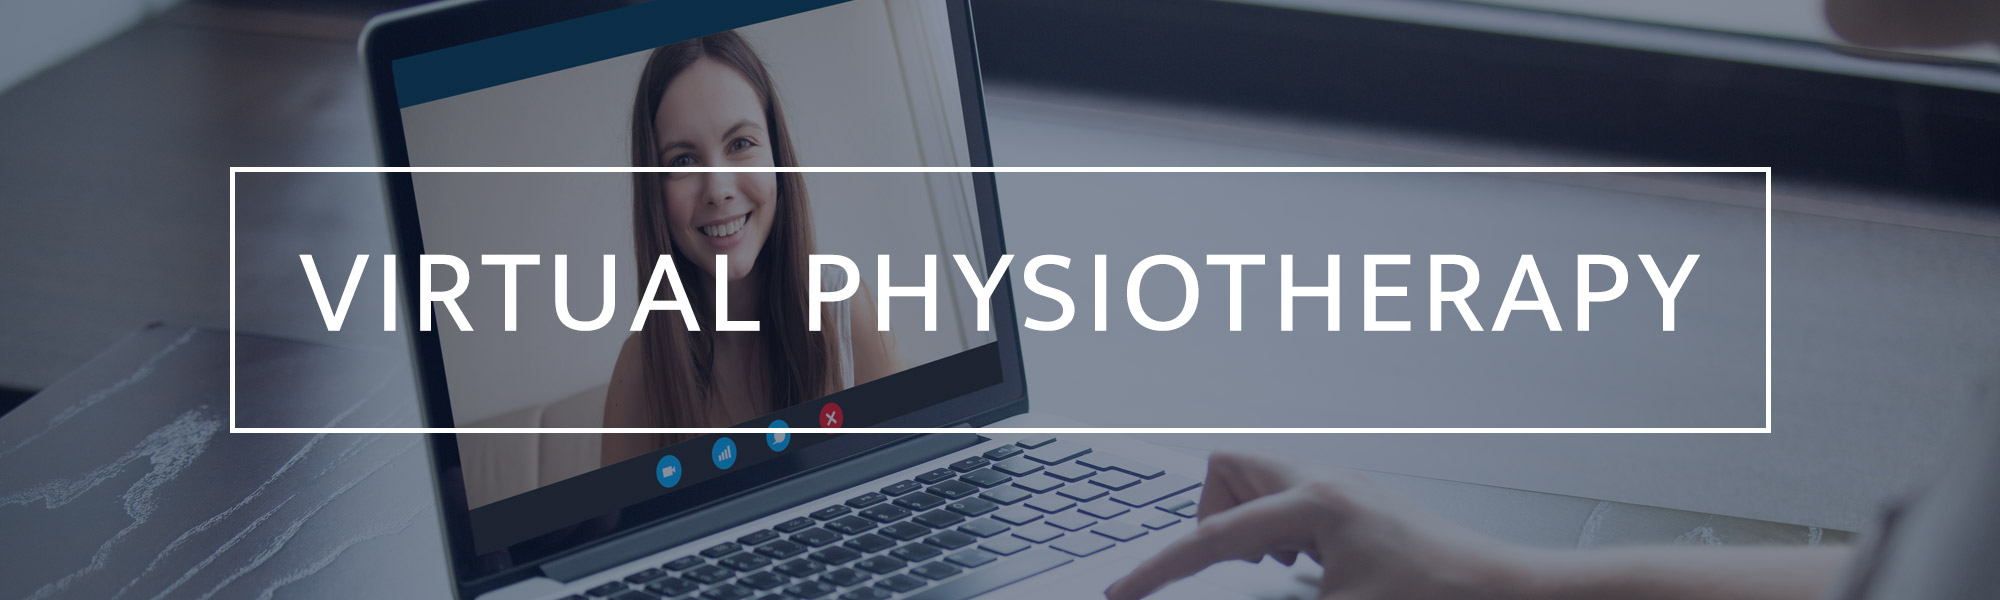 Virtual Physiotherapy Header 2